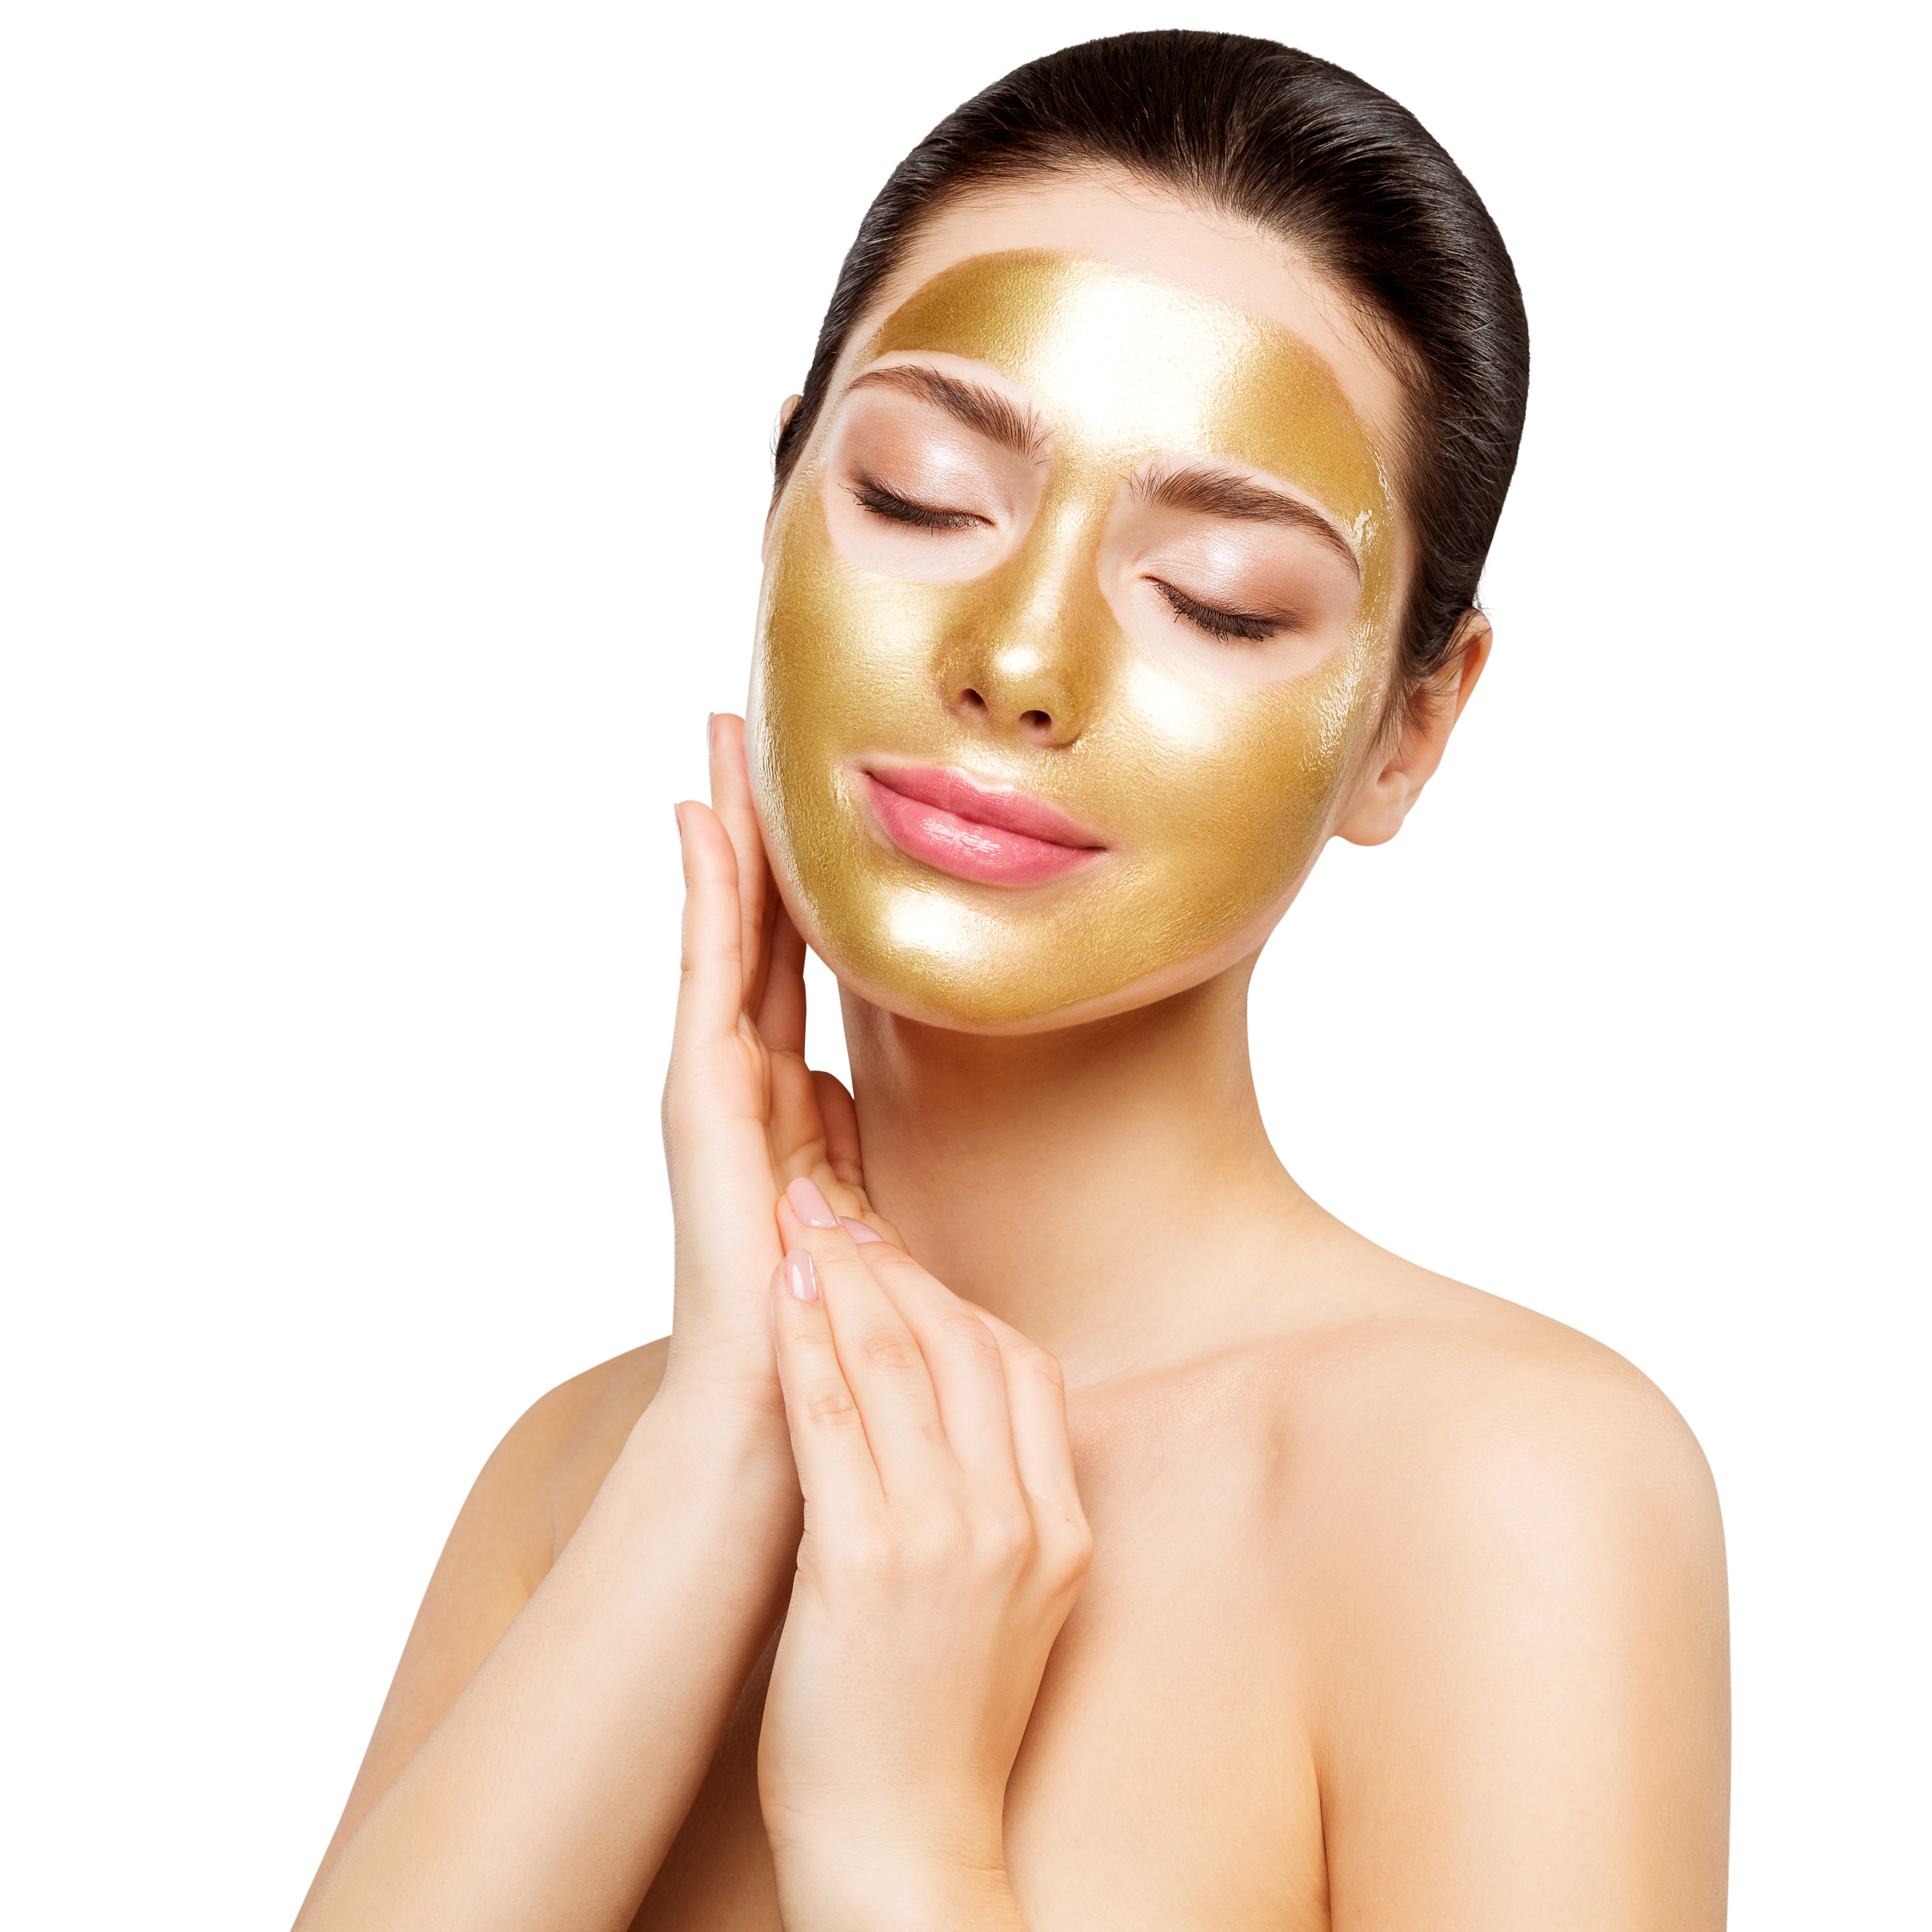 Woman Gold Mask, Beautiful Model with Golden Skin Cosmetic touch Face, Beauty Skincare and Treatment